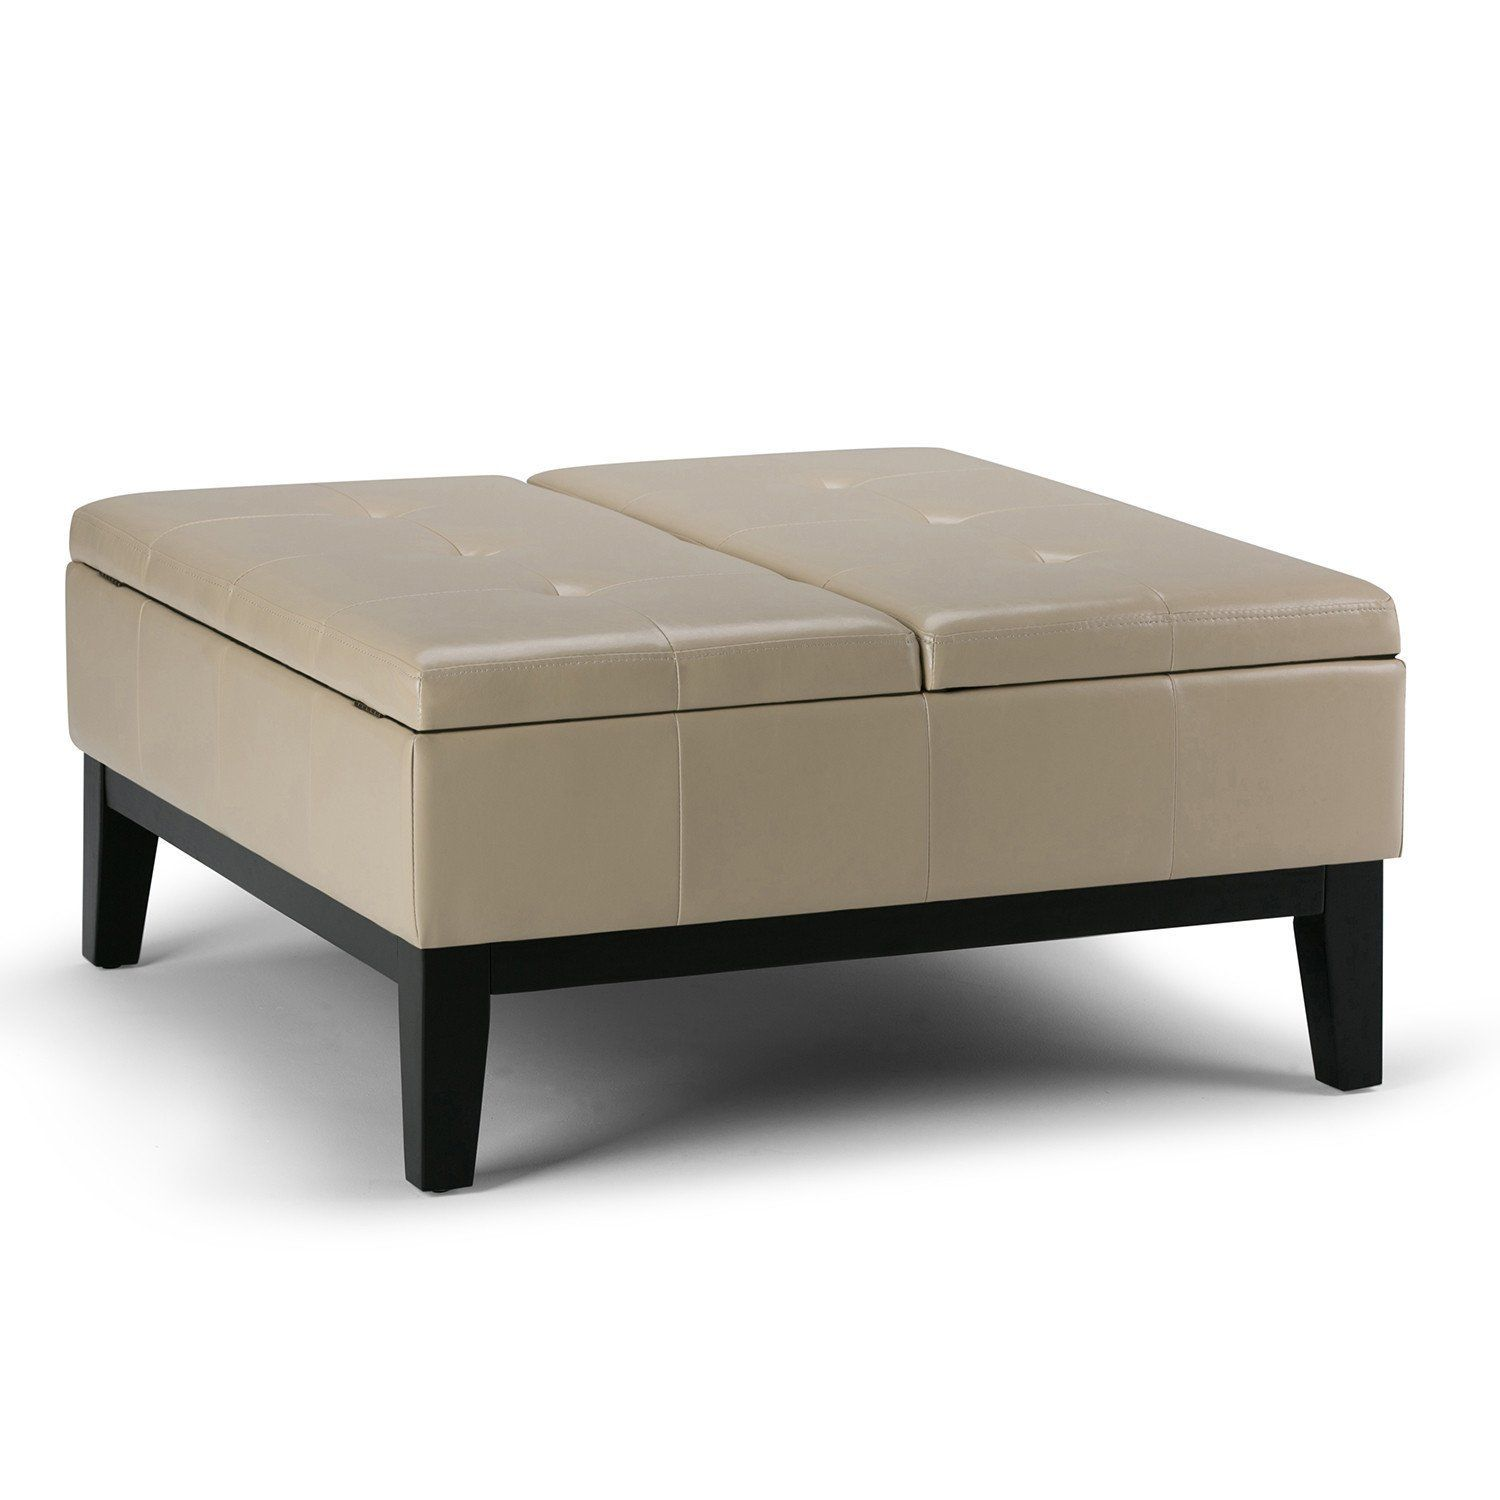 Dover Square Coffee Table Ottoman with Split Lift Up Lid